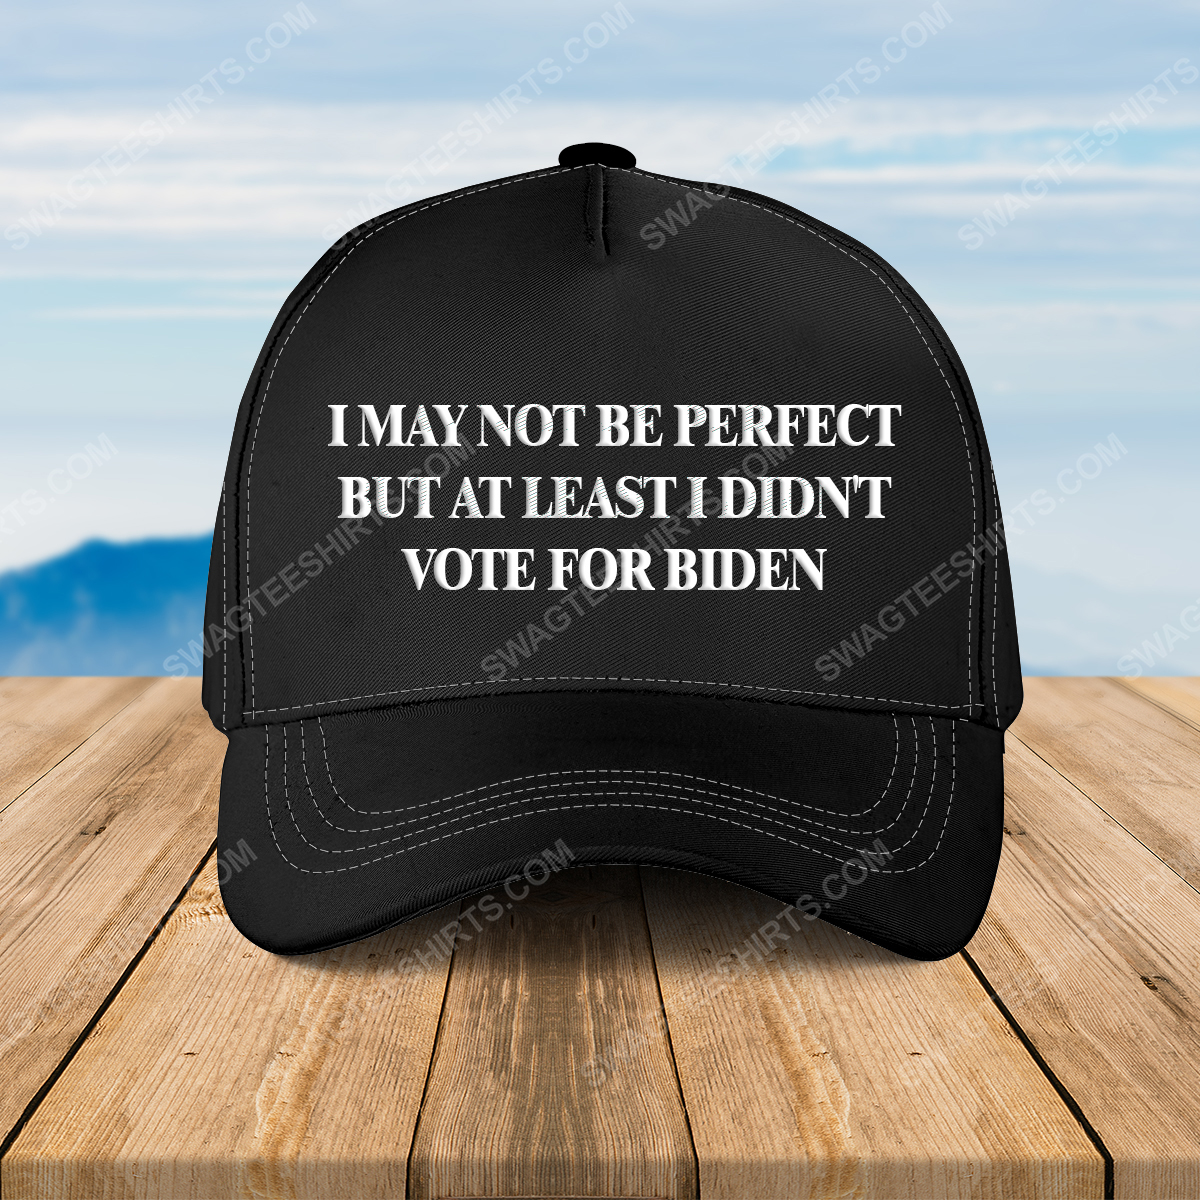 I may not be perfect but at least i didn't vote for biden full print classic hat 1 - Copy (3)